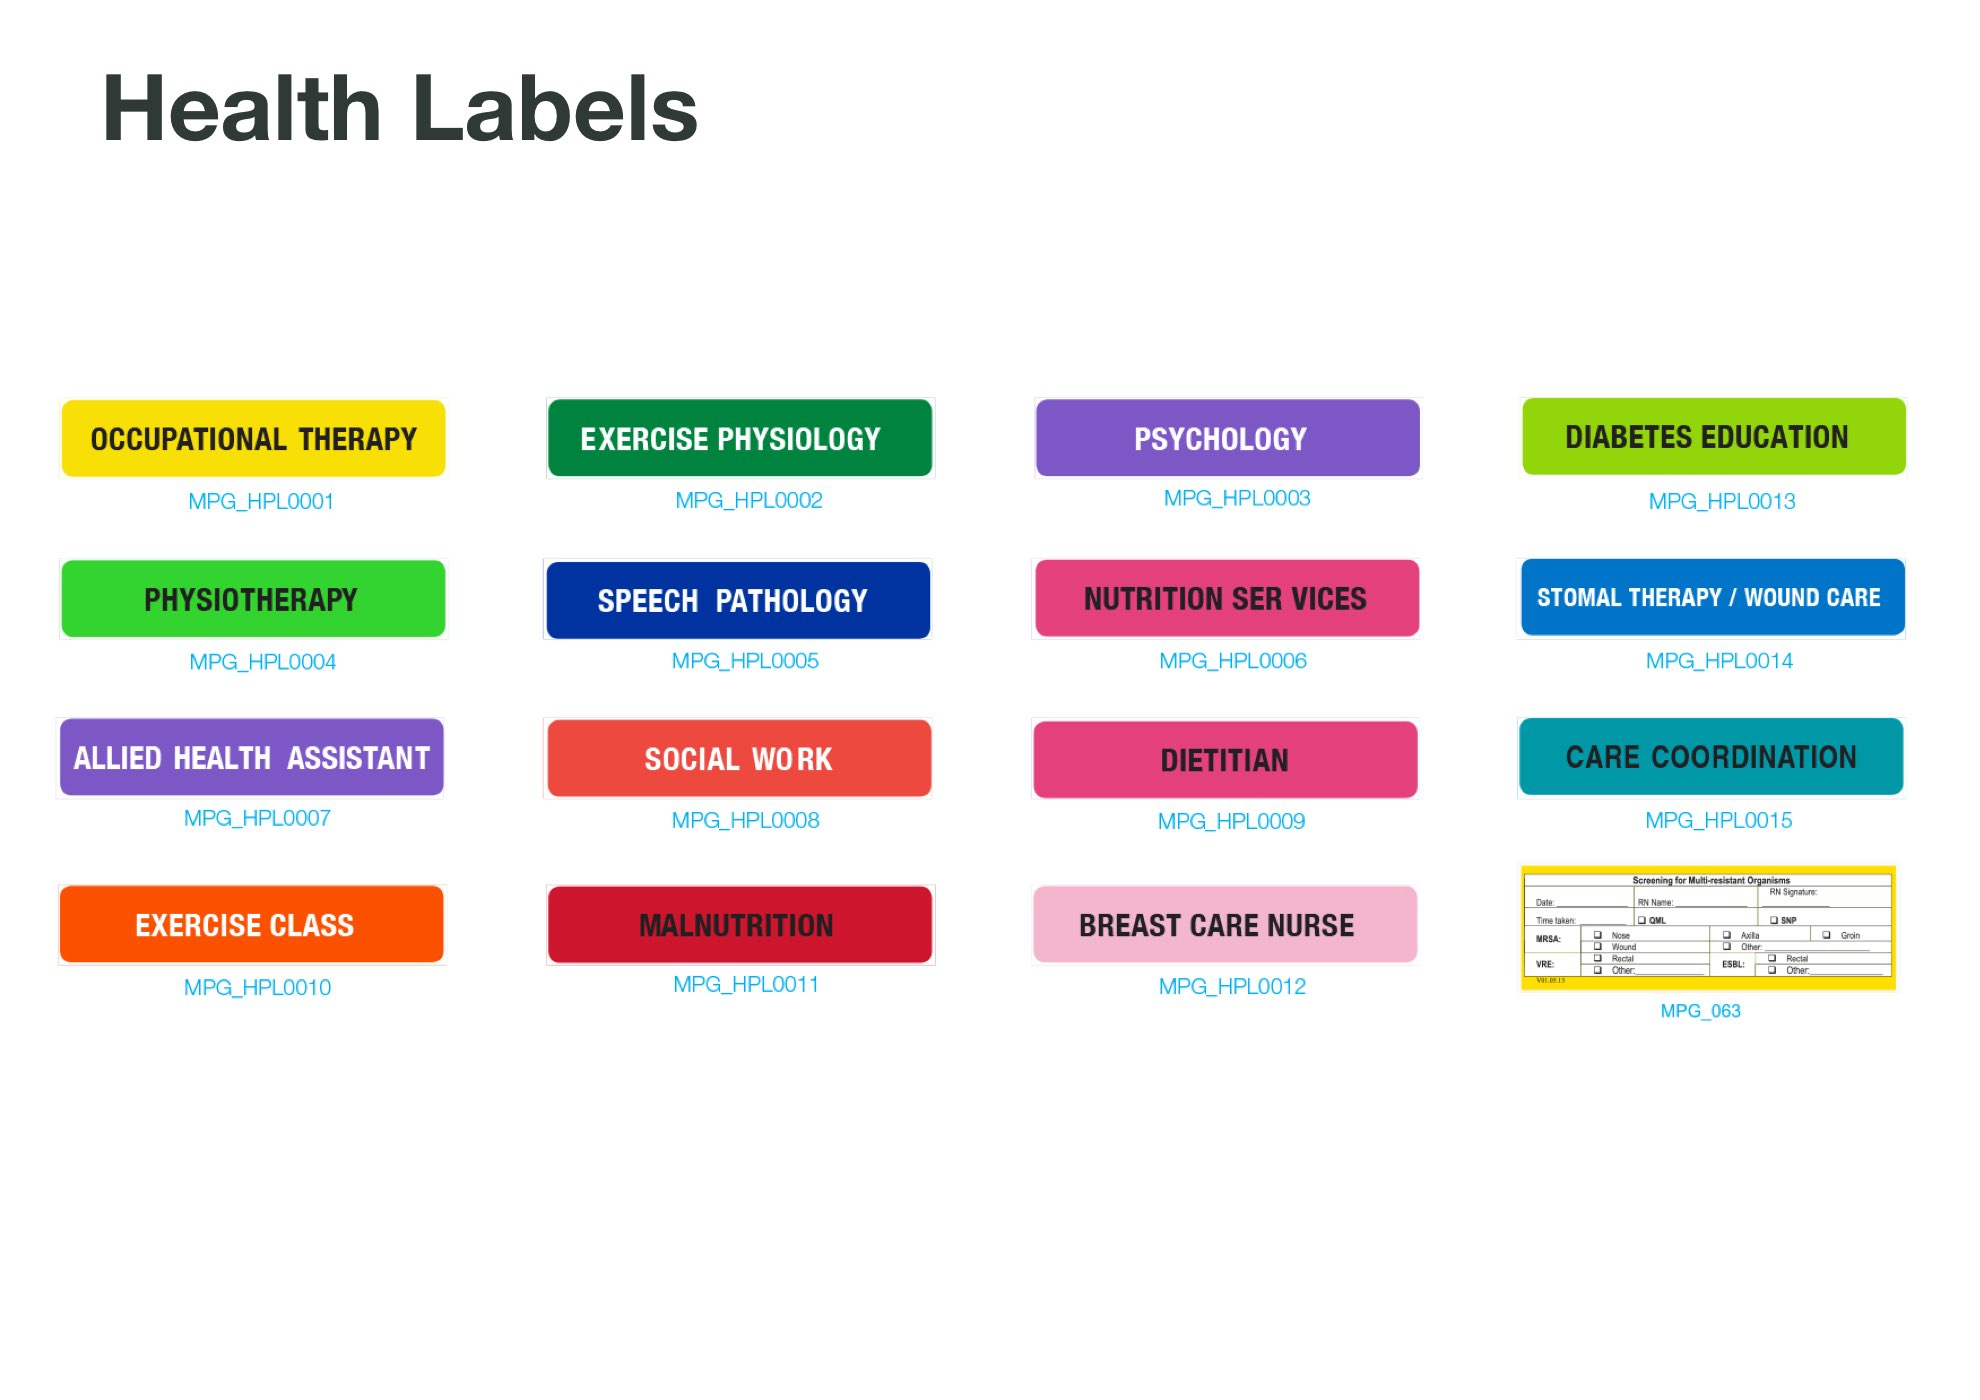 Health labels